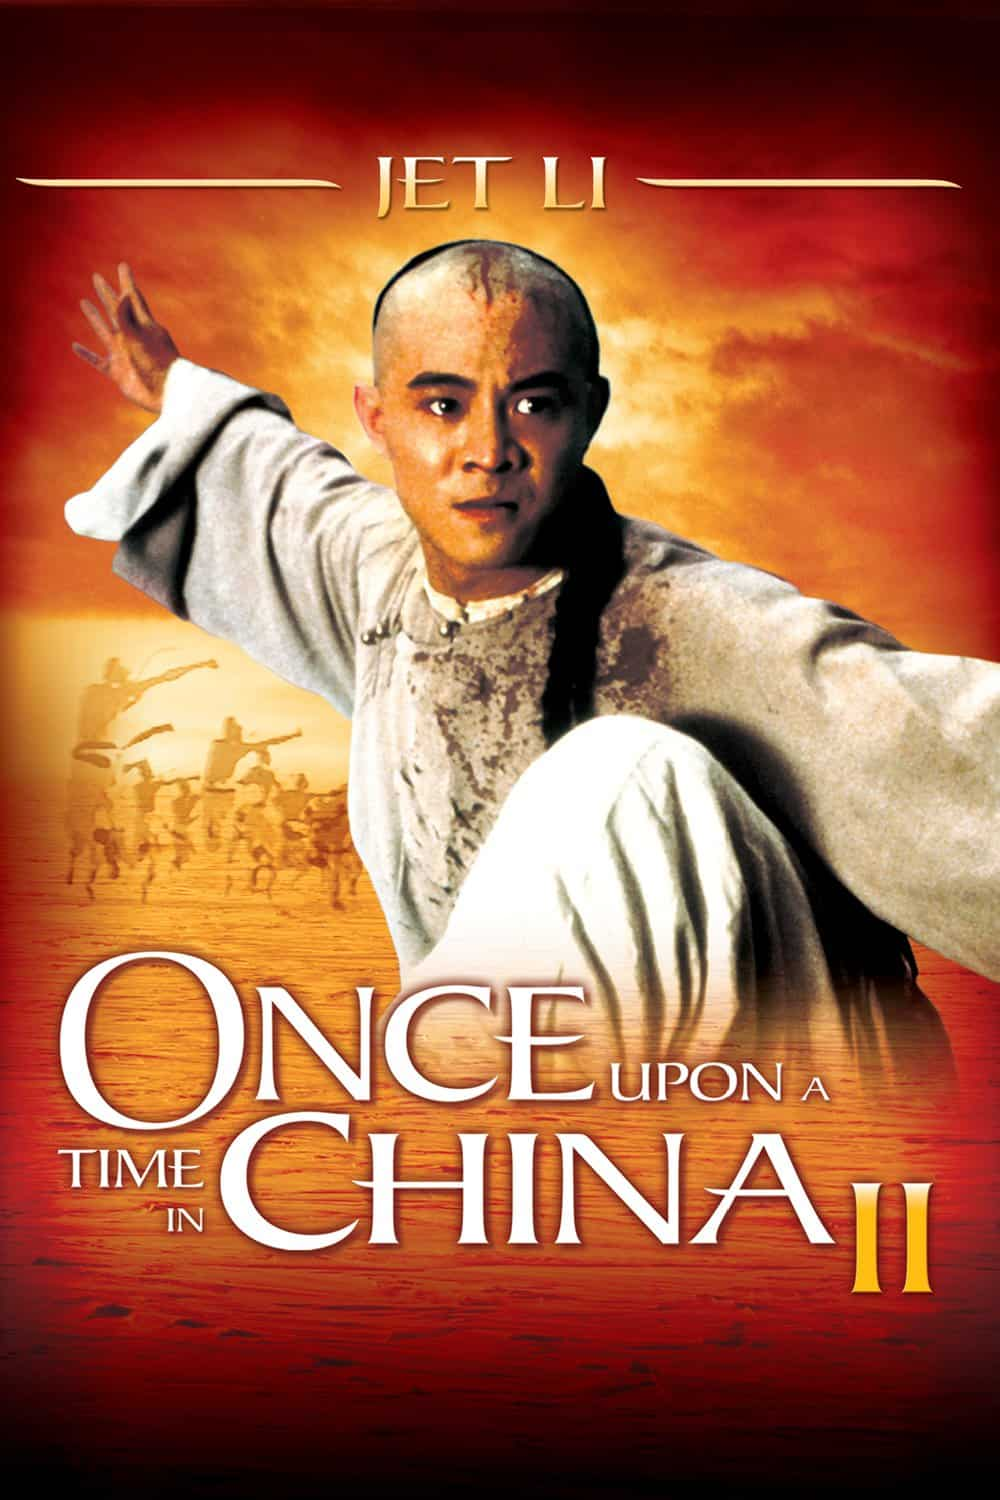 Once Upon a Time in China II, 1992